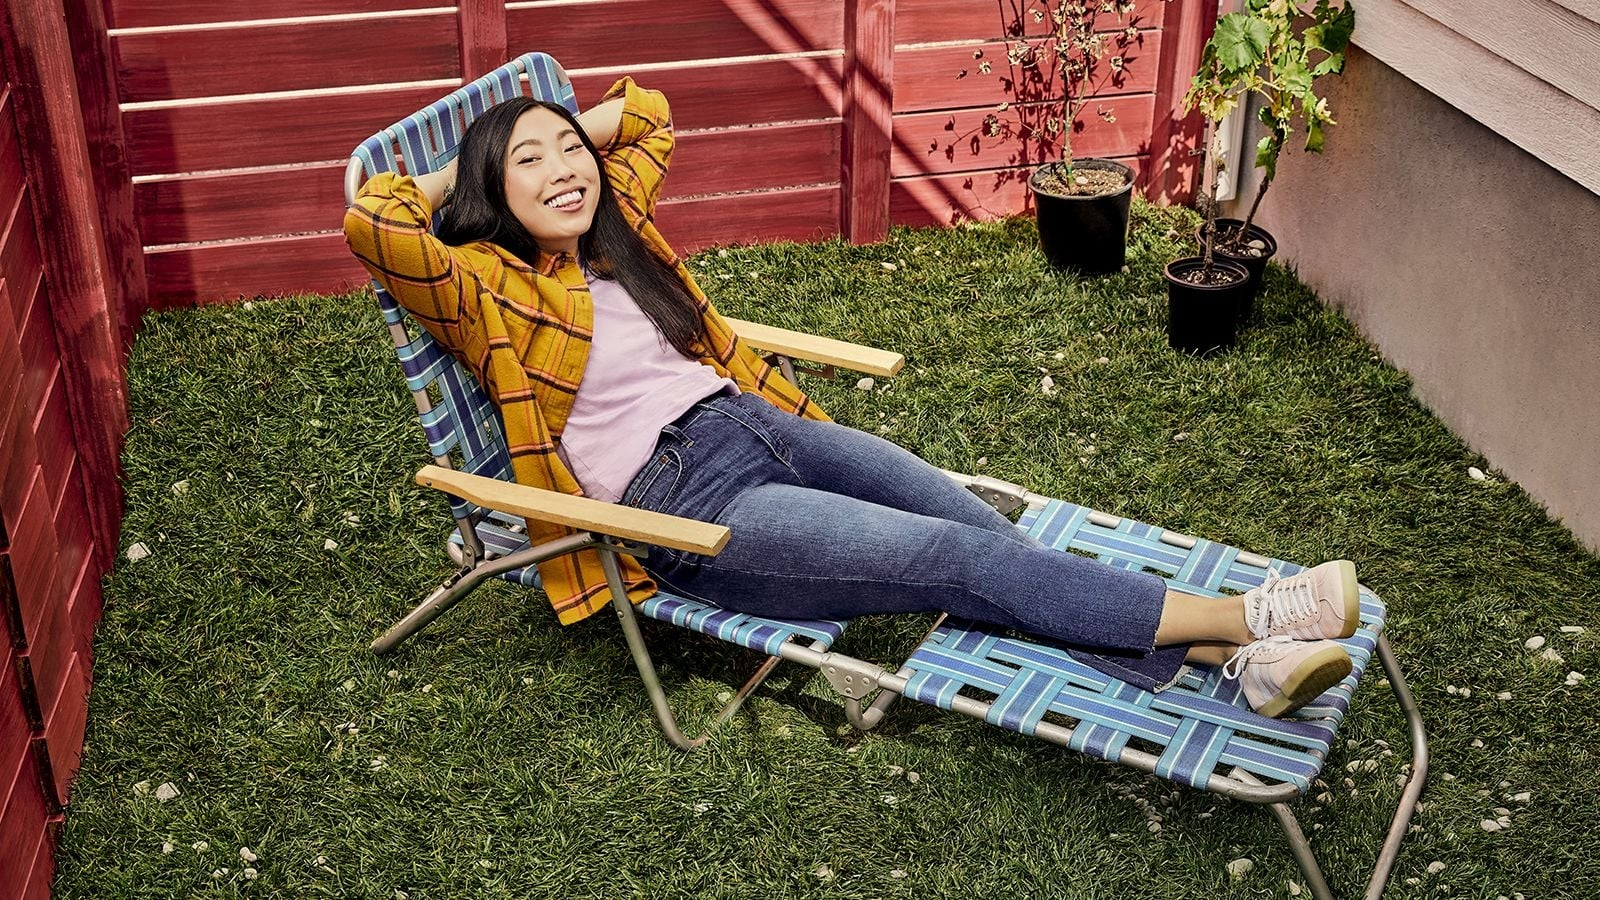 Awkwafina; er is nieuwe titel voor Comedy Central-serie